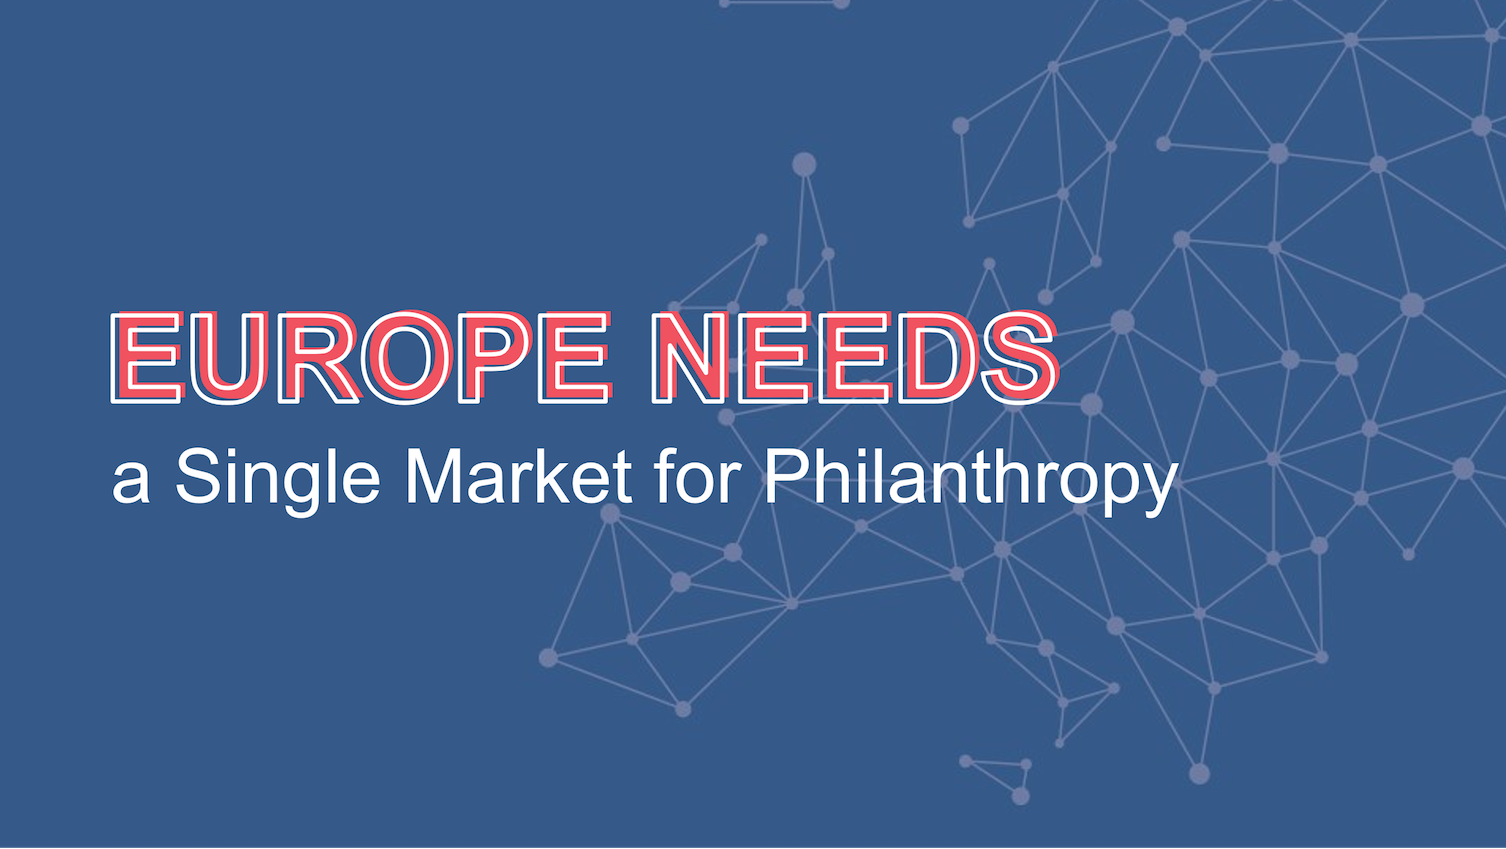 Single Market for Philanthropy